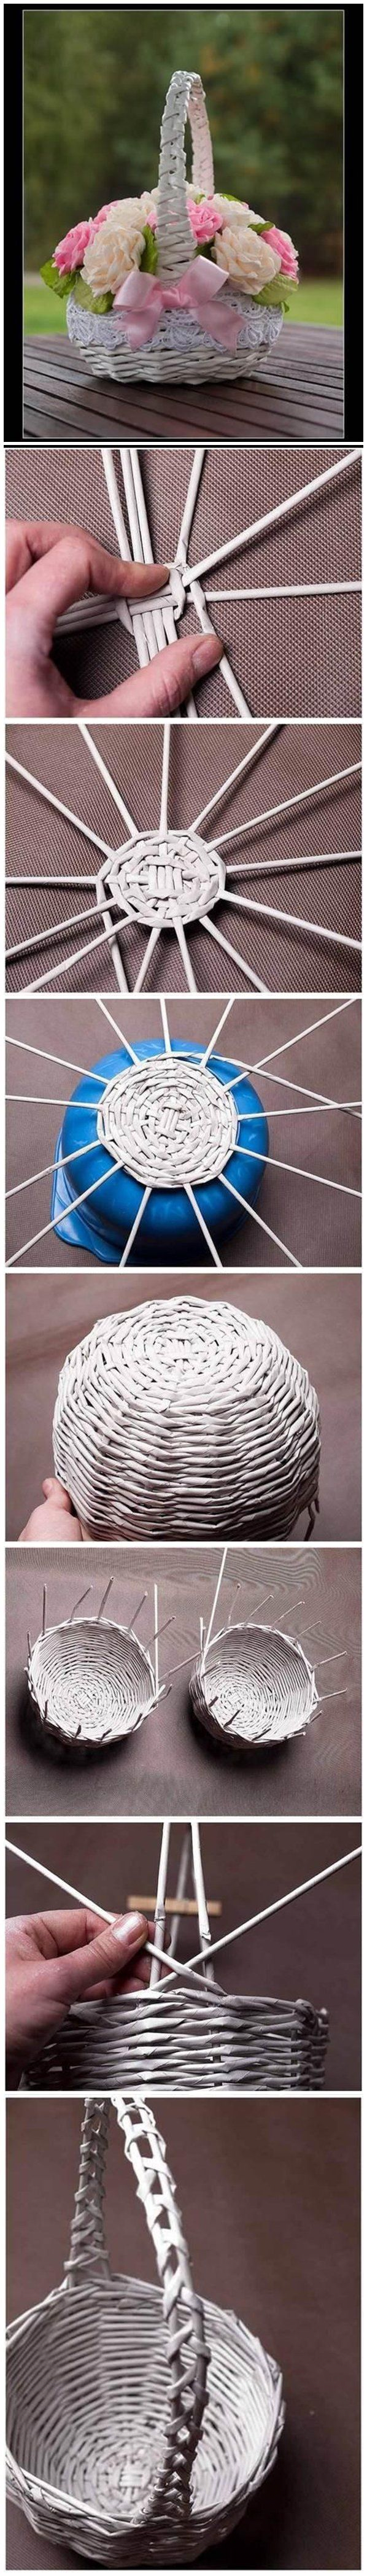 Pinterest Facebook Google+ reddit StumbleUpon Tumblr Pinterest Facebook Google+ reddit StumbleUpon Tumblr Here is a nice DIY project to make a weaving basket using newspaper tubes. Isn'tthat cool? After you are done with the weaving, decorate the basket with lace and bows and place some flowers in it. Now you have this beautiful home decor